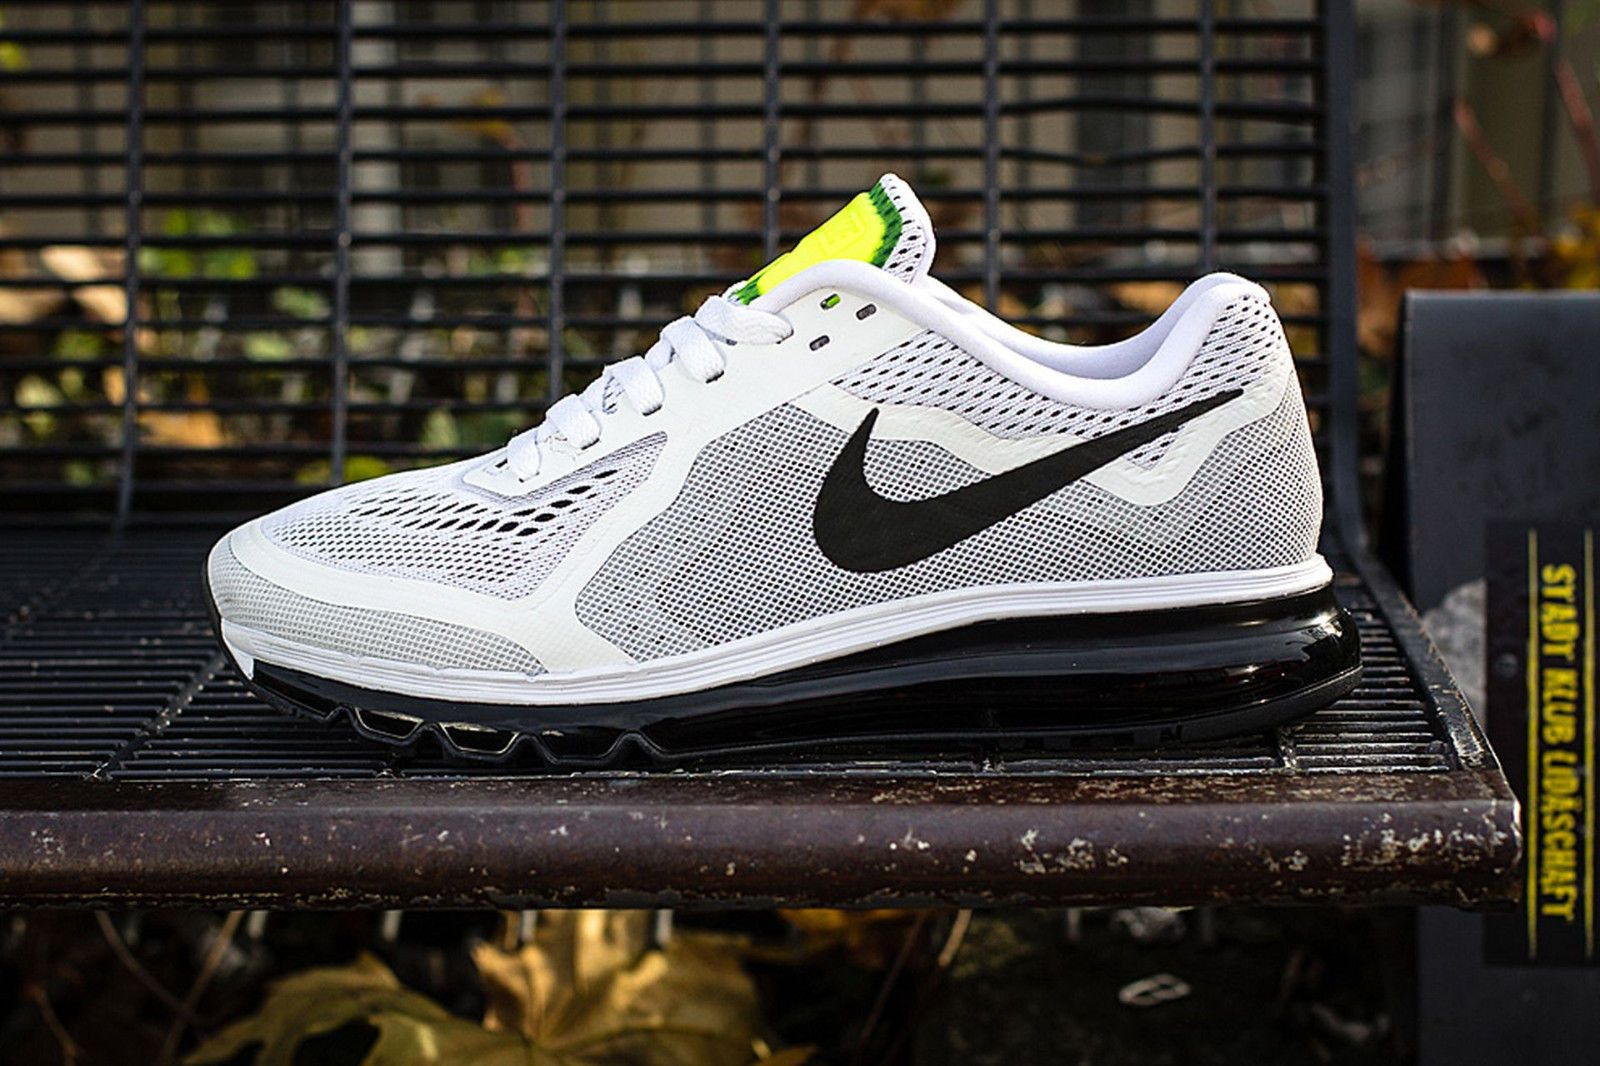 Authentic Nike Shoes Nike Air Max 2014 Pure PlatinumVolt